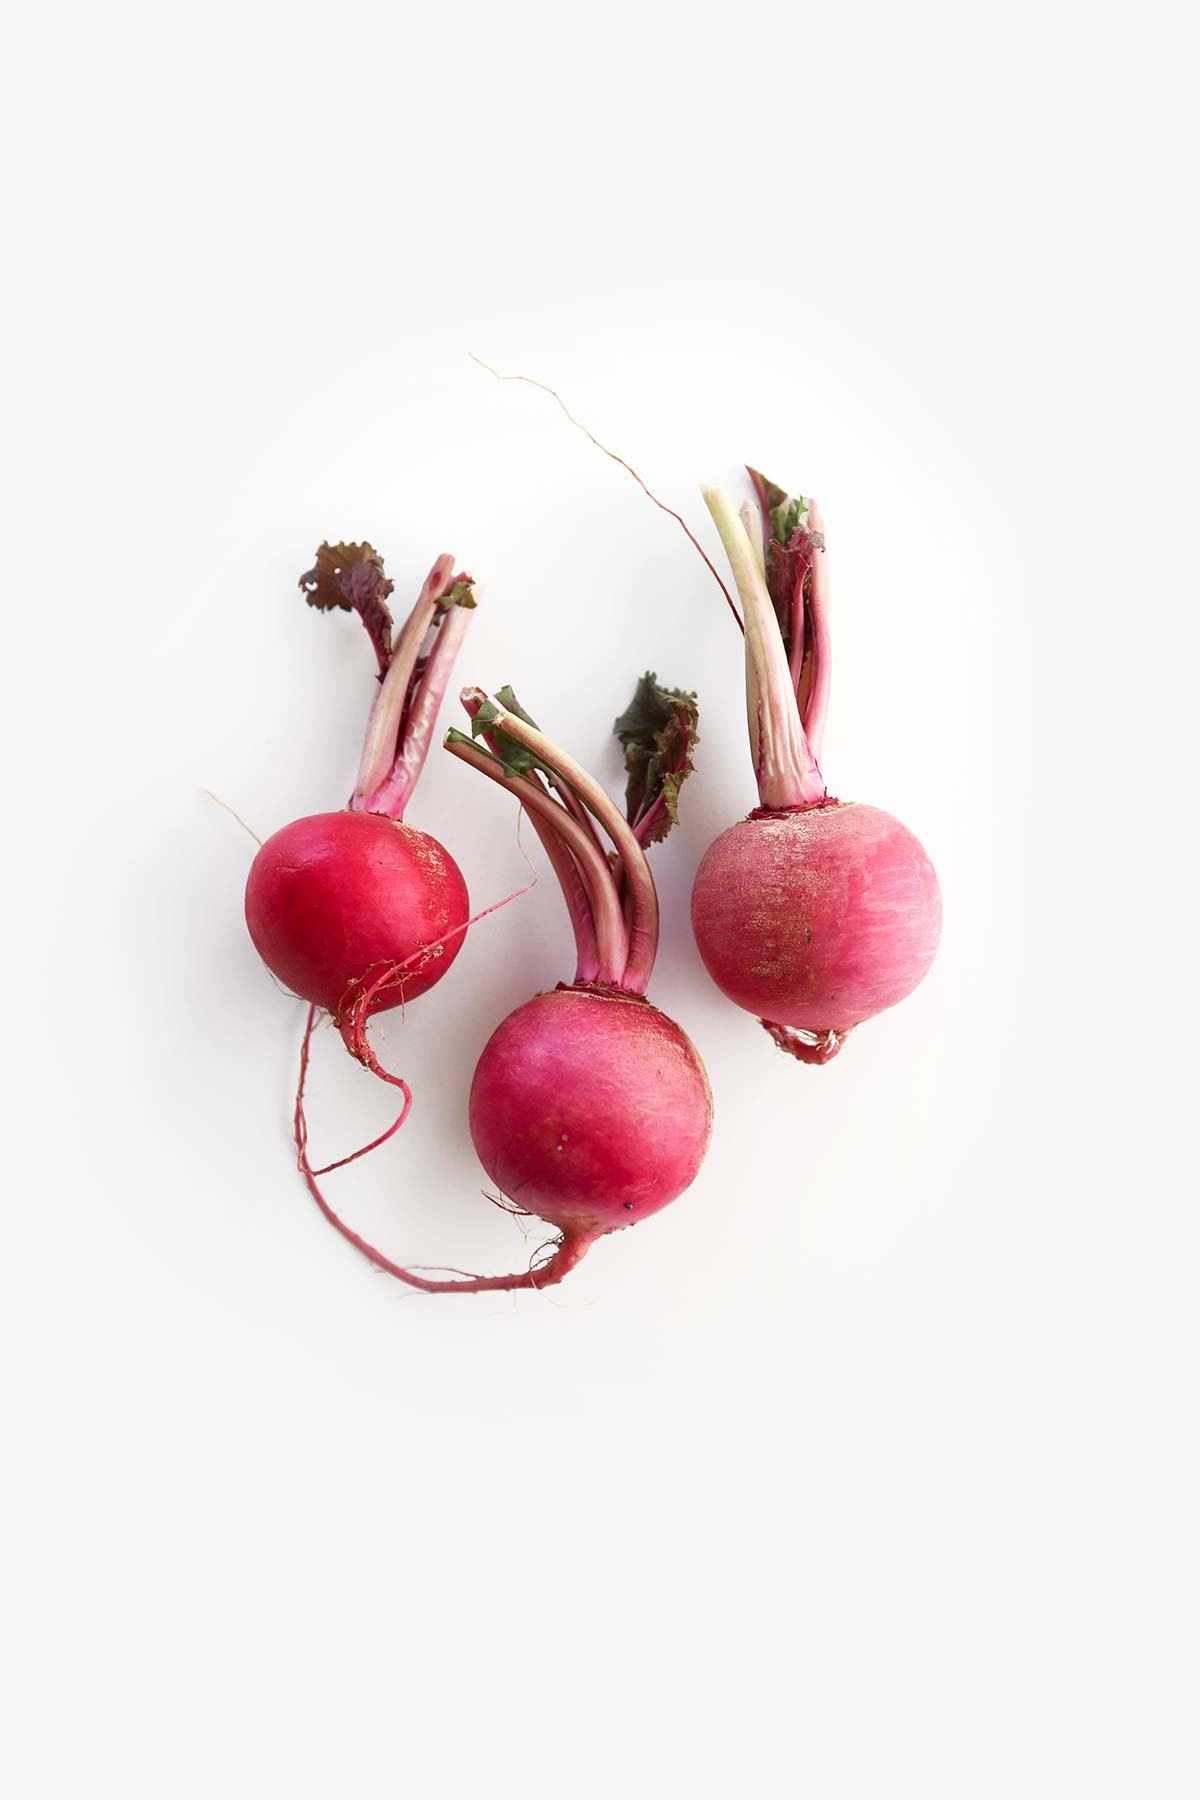 Keto Radish, a guide to keto foods for low carb. keto, keto ingredients, keto foods, keto produce, keto vegetables, ketogenic diet, keto shopping list, low carb, low carb foods, low carb vegetables, lchf, lchf foods